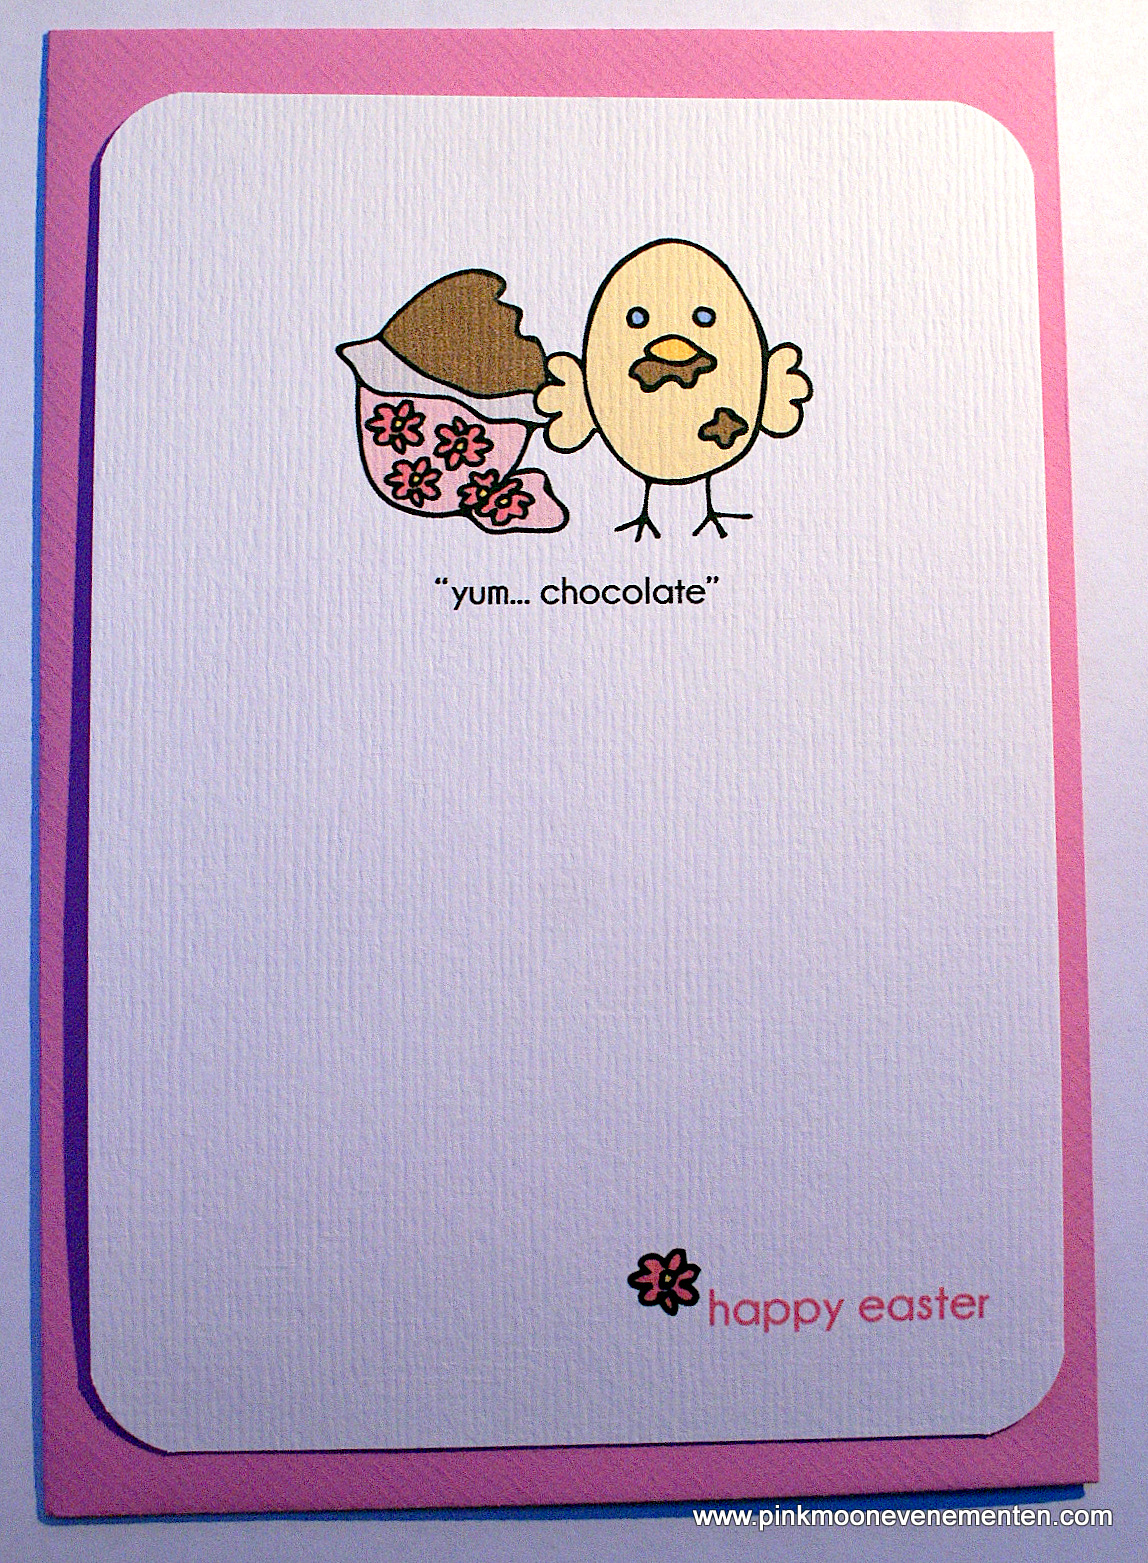 Yum chocolate easter card in etsy kristyandbryce Choice Image